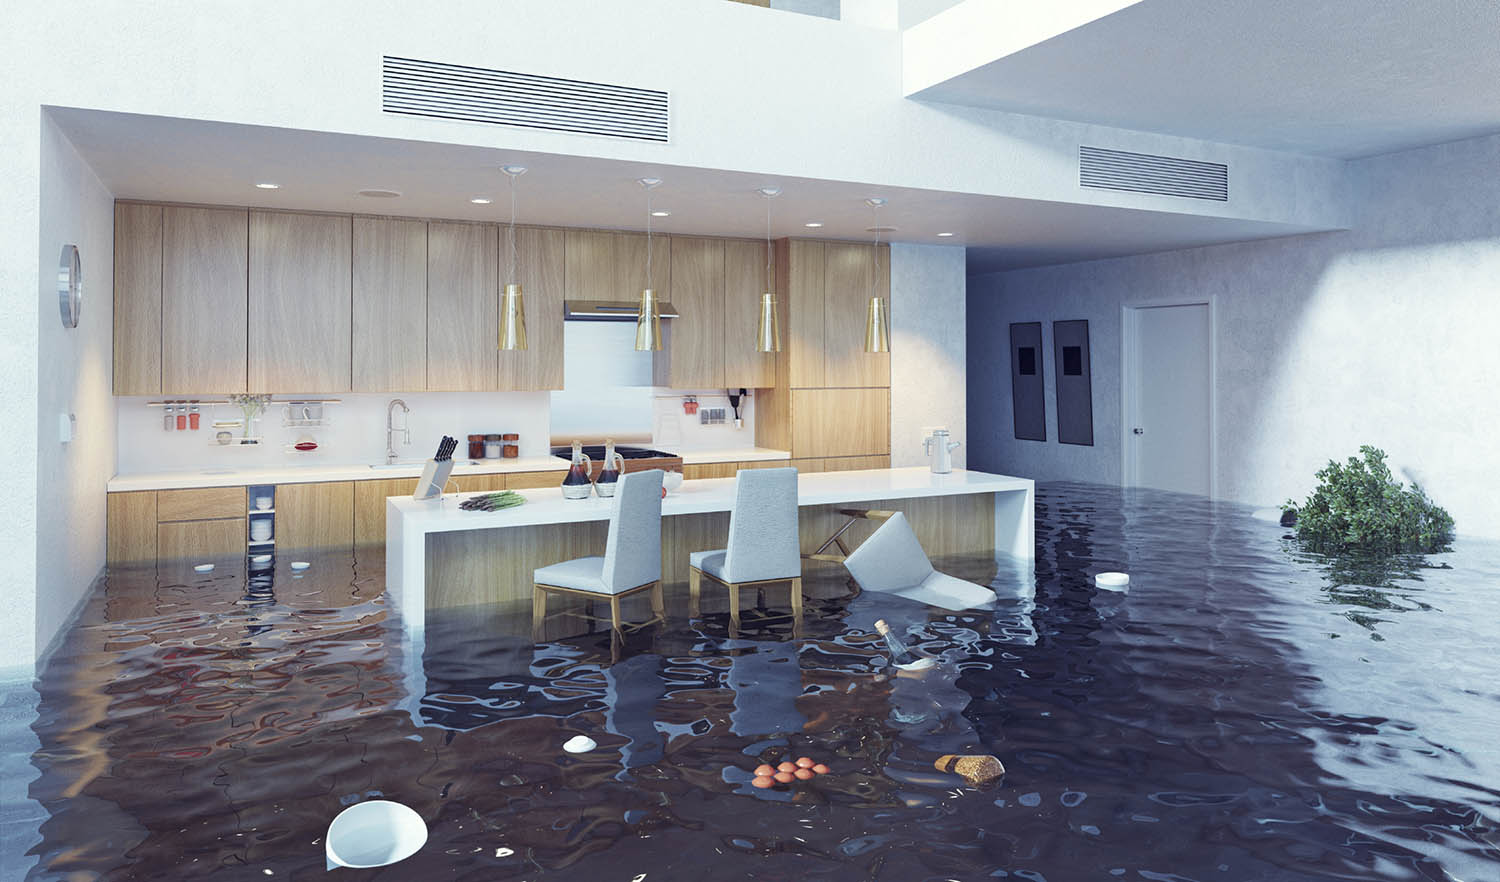 flooding in luxurious kitchen interior. 3d creative concept